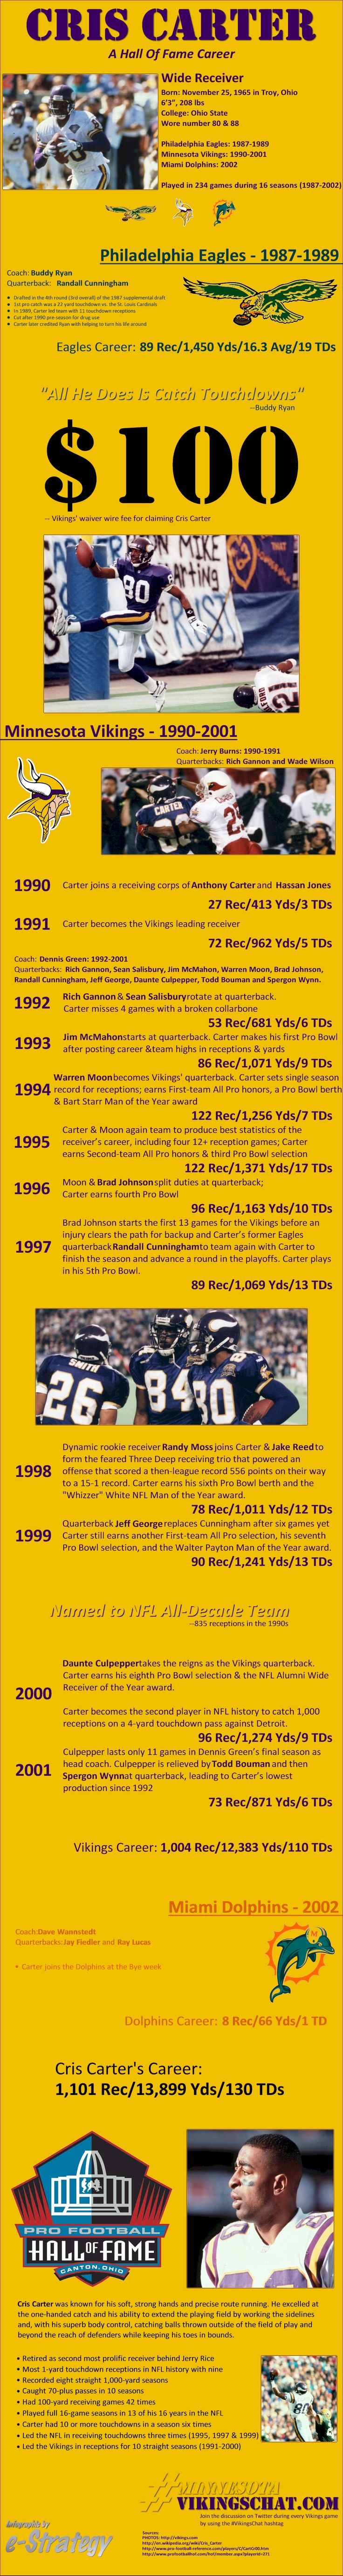 Cris Carter's Hall Of Fame Career INFOGRAPHIC - Minnesota Vikings Football HallOfFame